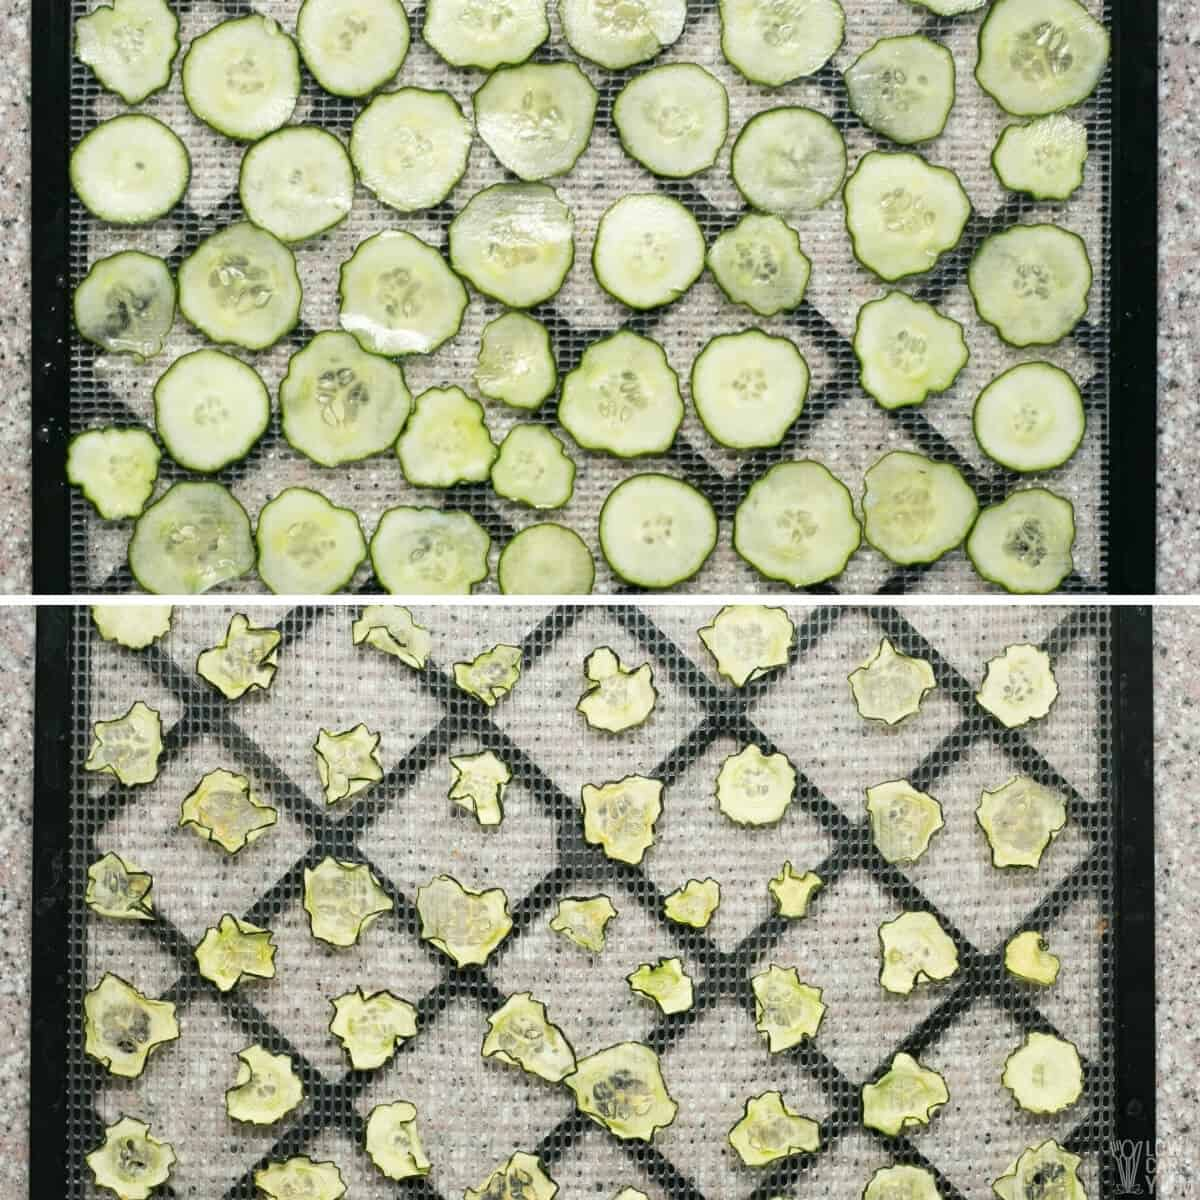 cooking cucumber slices on trays